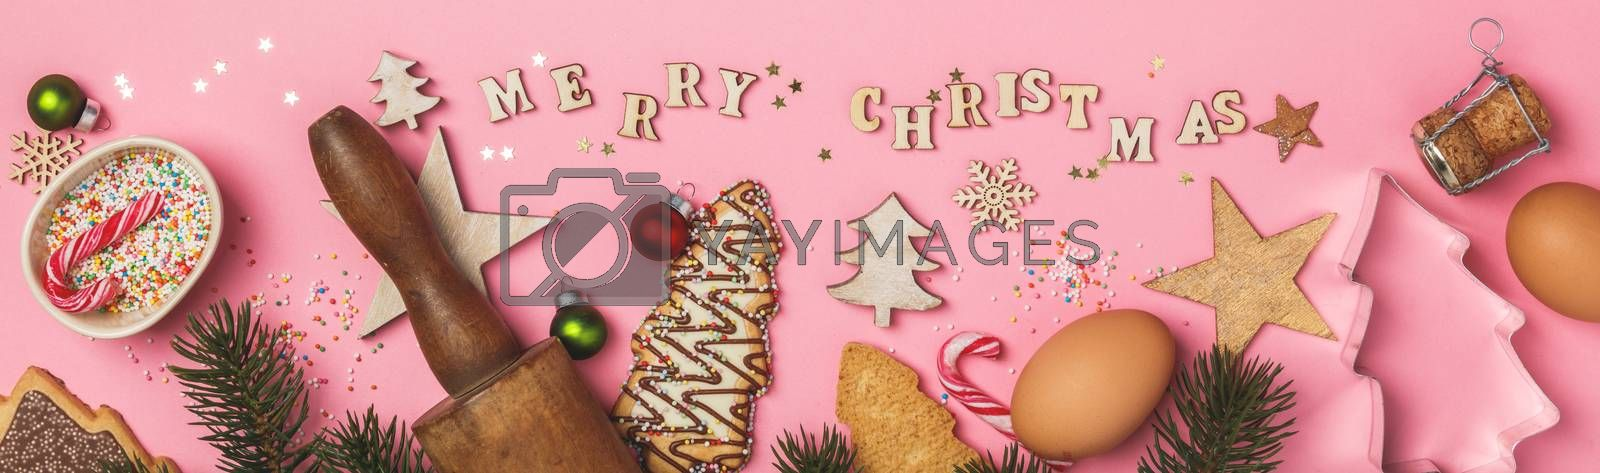 Christmas gingerbread cookies in the shape of a Christmas tree, baking ingredients and Merry Christmas written with wooden letters on pink background